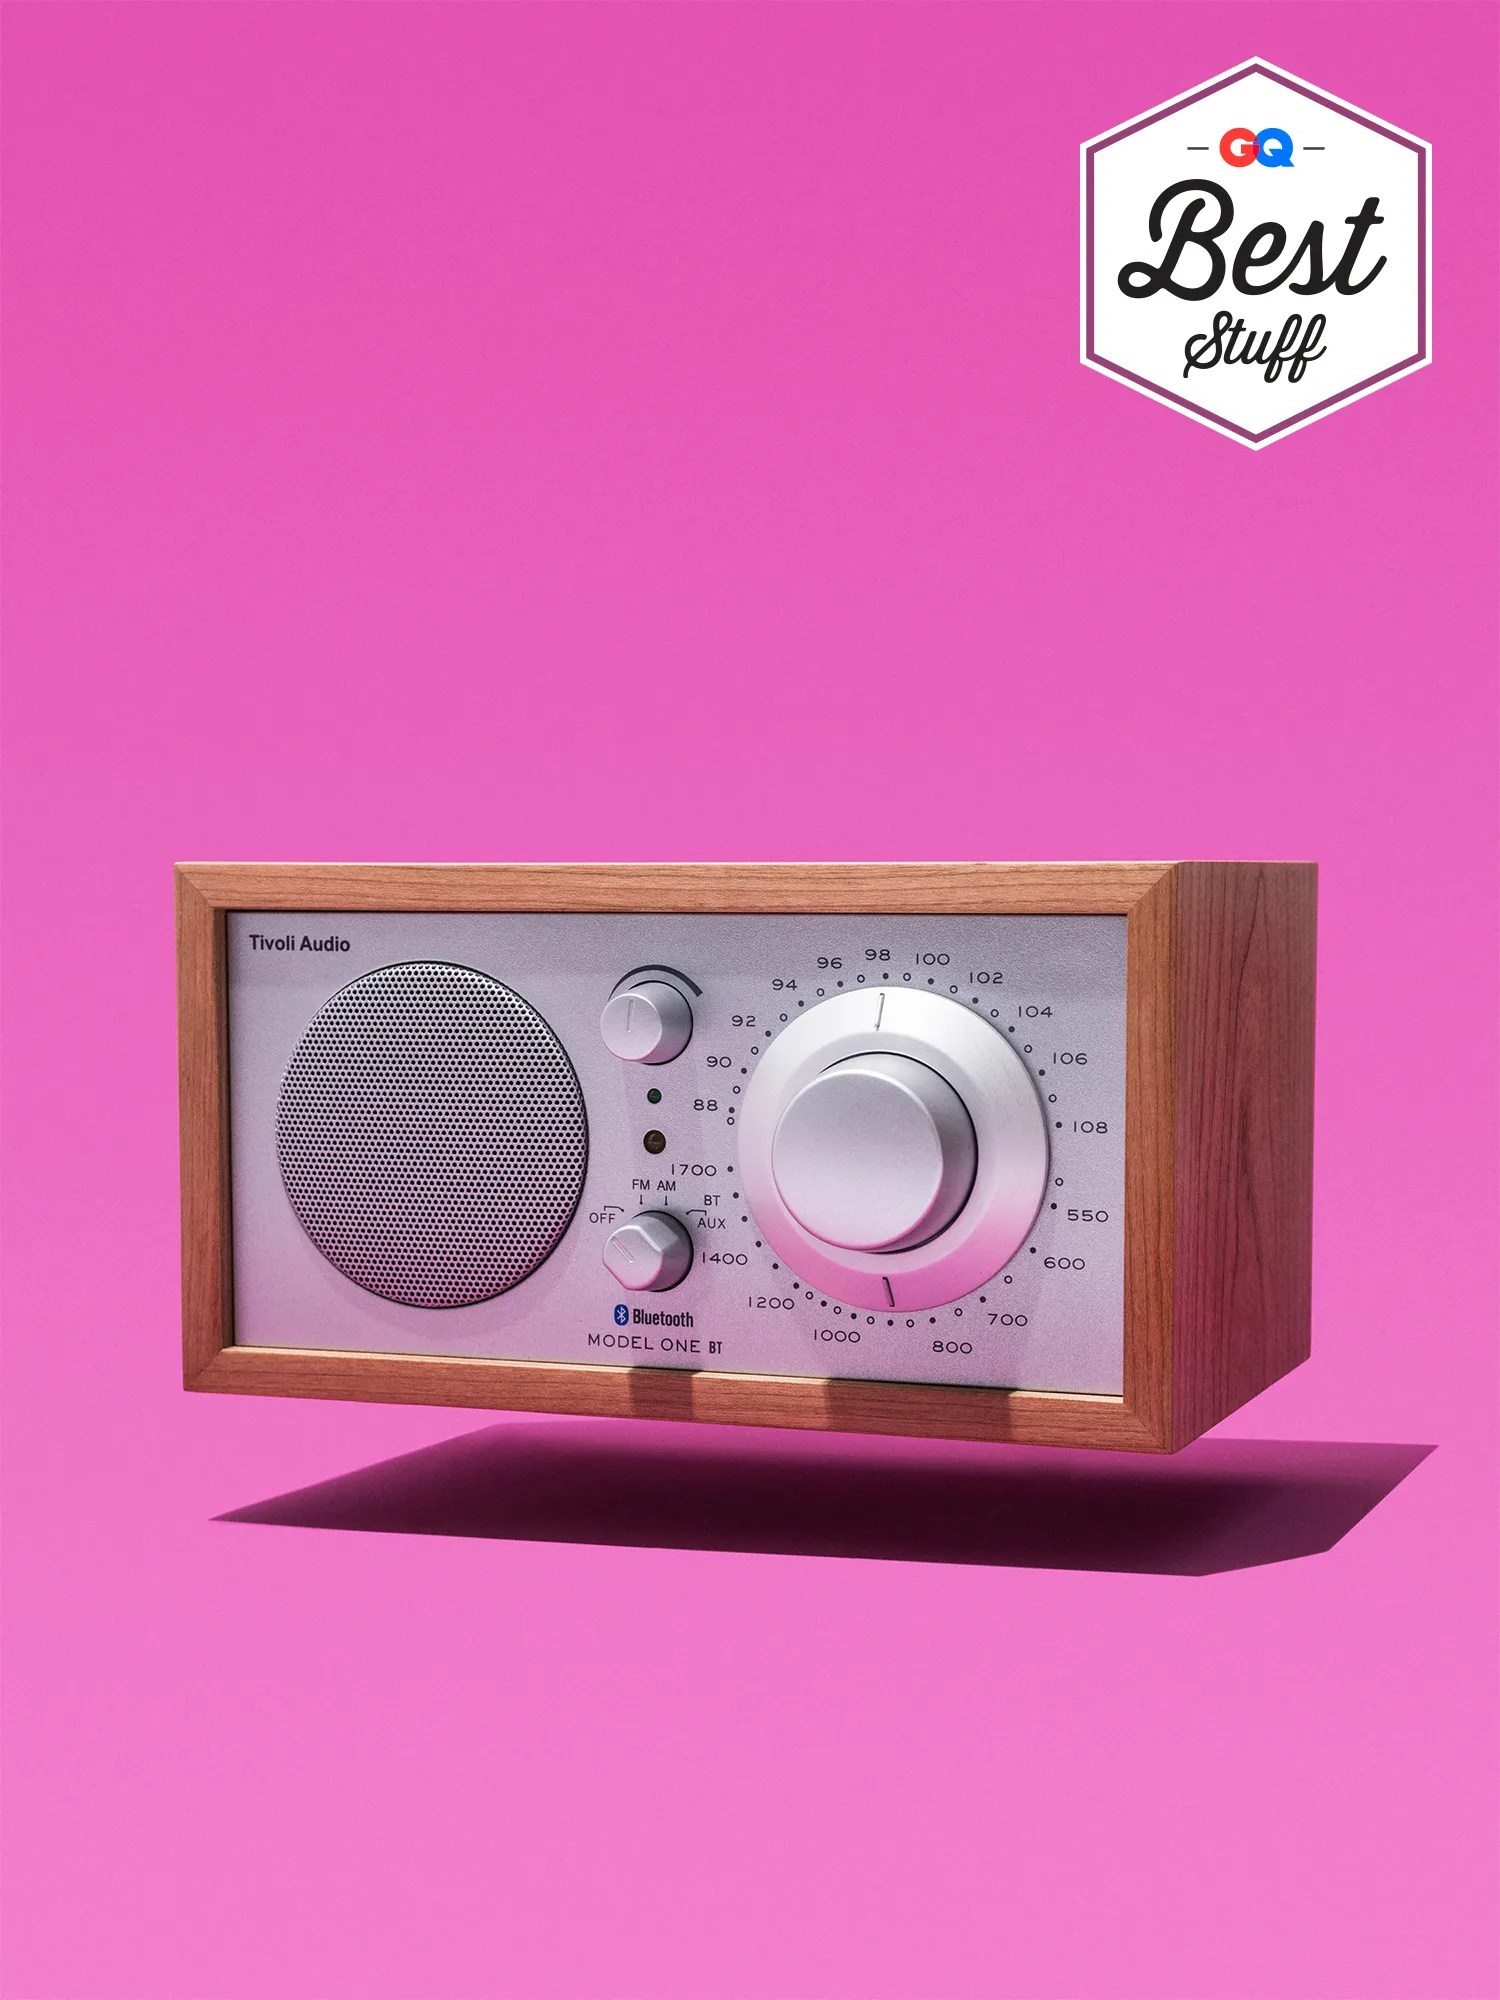 Tivoli Audio Model One Am/fm Table Radio Review The Best Radio Is Simple Beautiful And Unfussy Gq